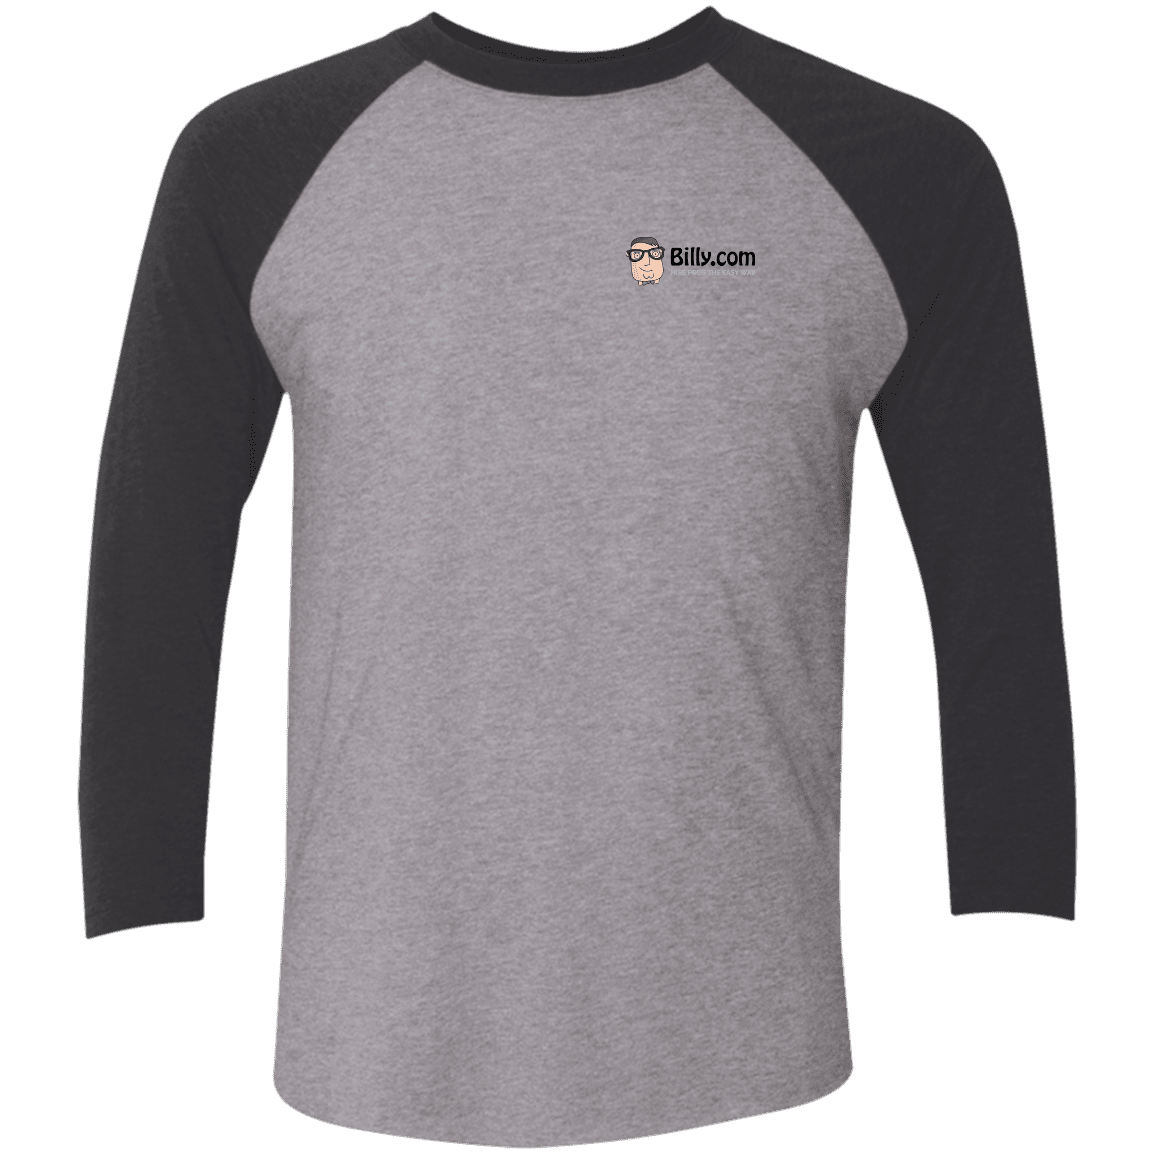 Billy.com Next Level Tri-Blend 3/4 Sleeve Baseball Raglan T-Shirt